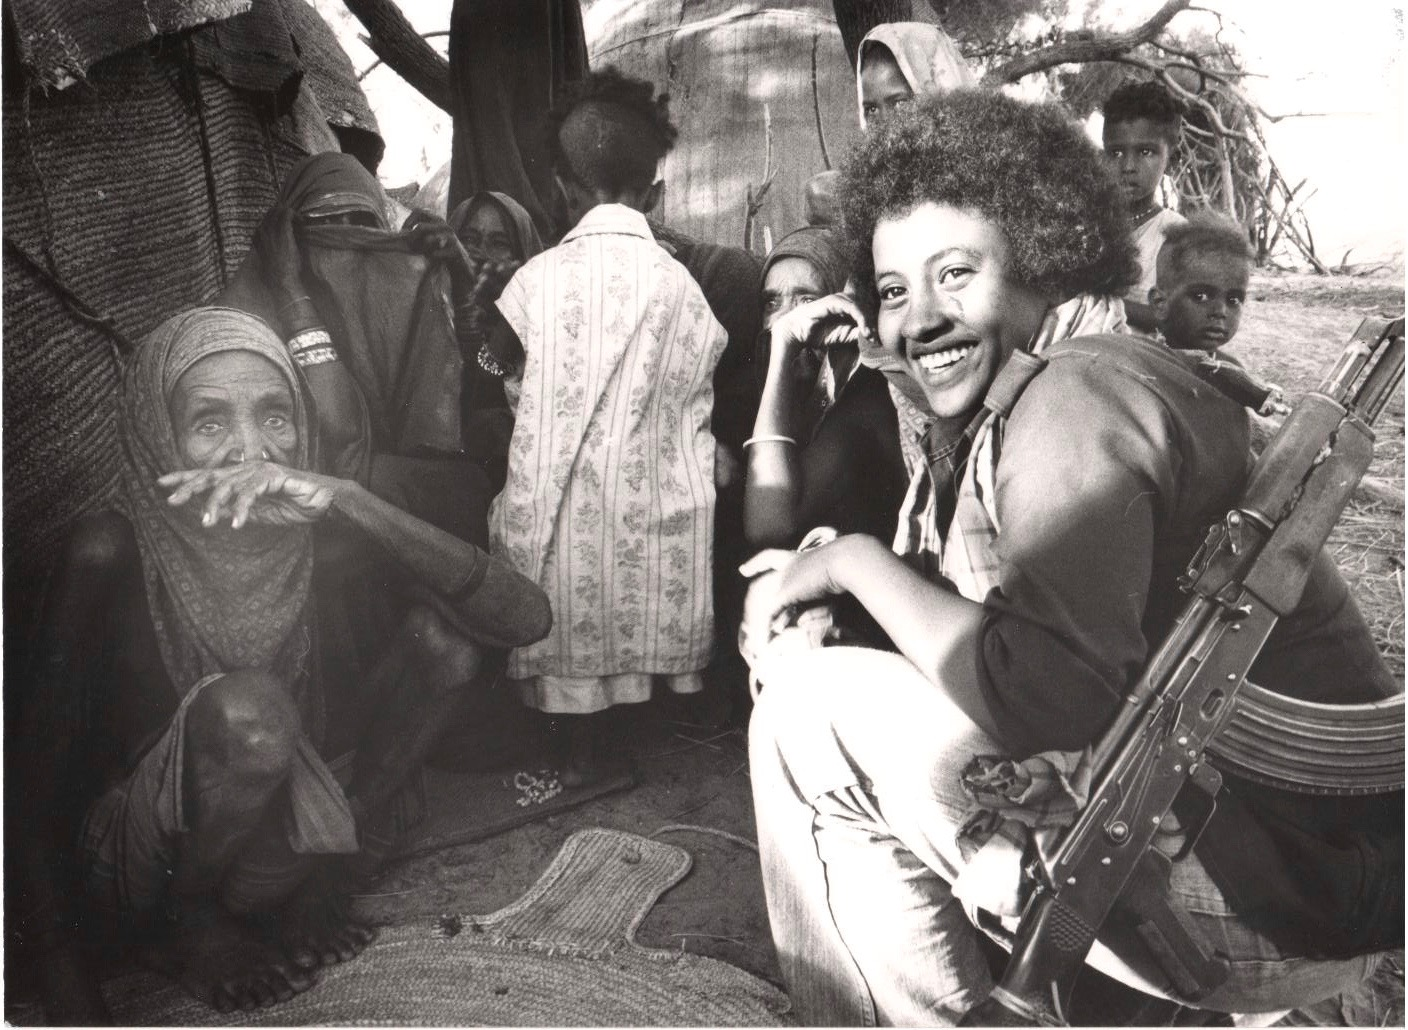 Eritrean fighters – two photos of those who fought for freedom | Eritrea  Focus